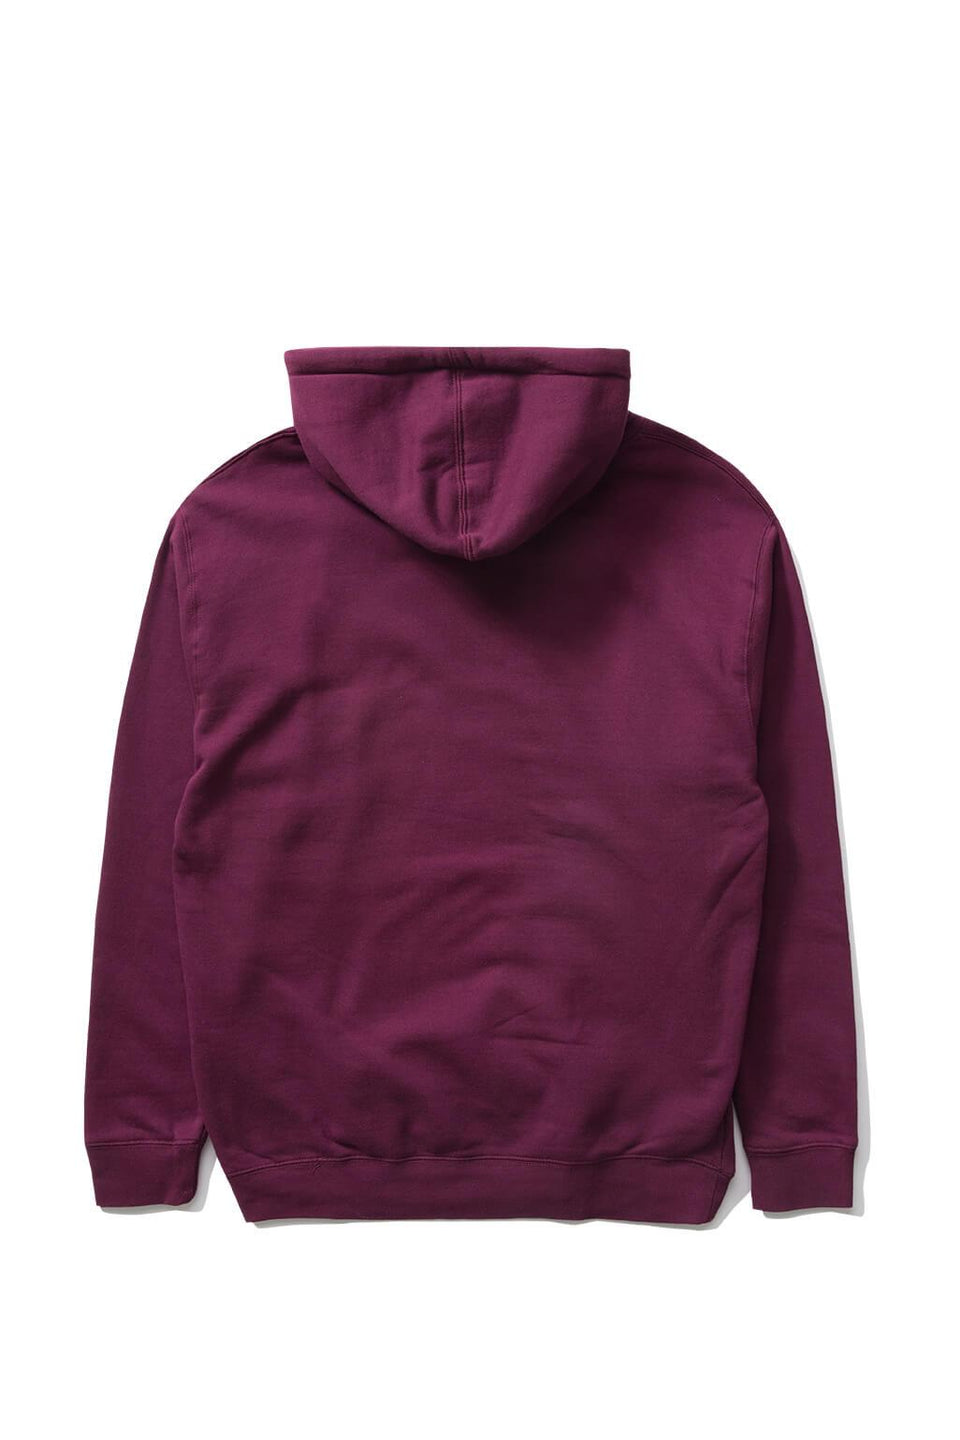 The Hundreds Forever Bar Pullover Hoodie Burgundy Back